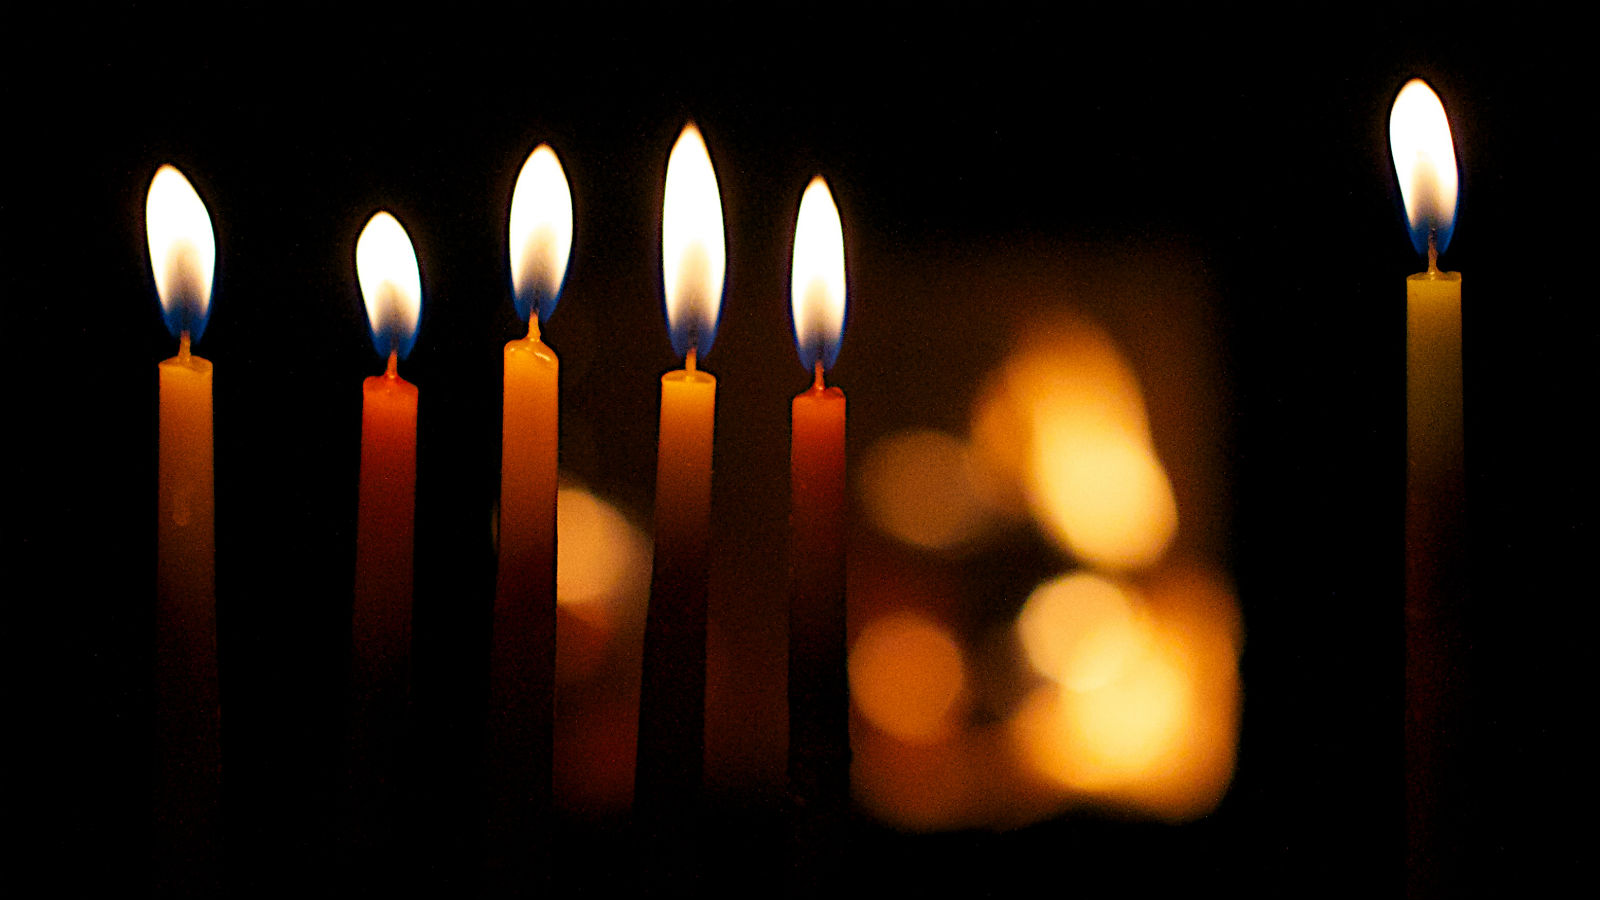 This Hanukkah, Let's Accept Each Other Without Labels